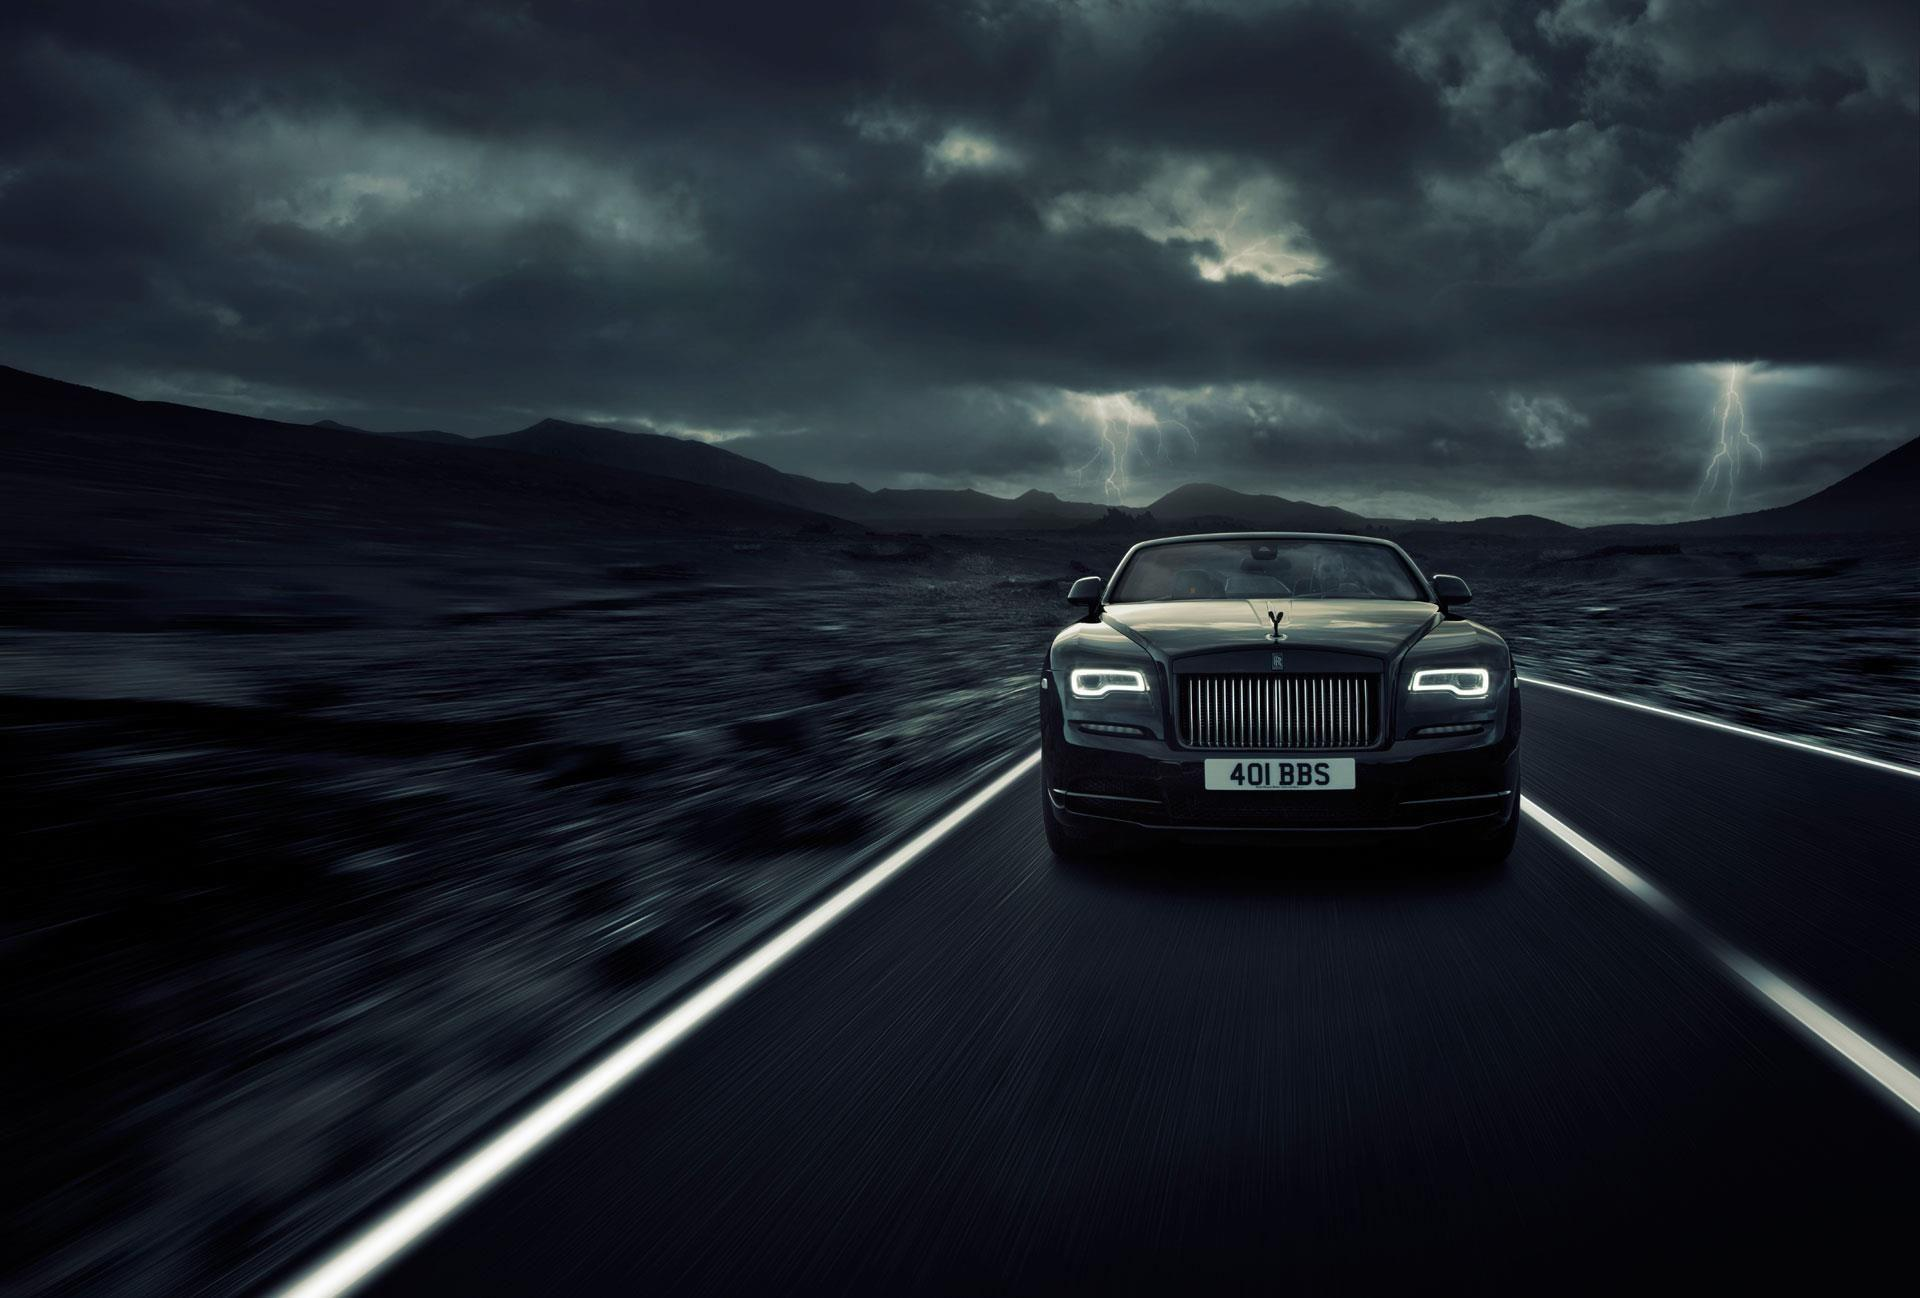 2017 Rolls-Royce Dawn Black Badge Wallpaper and Image Gallery